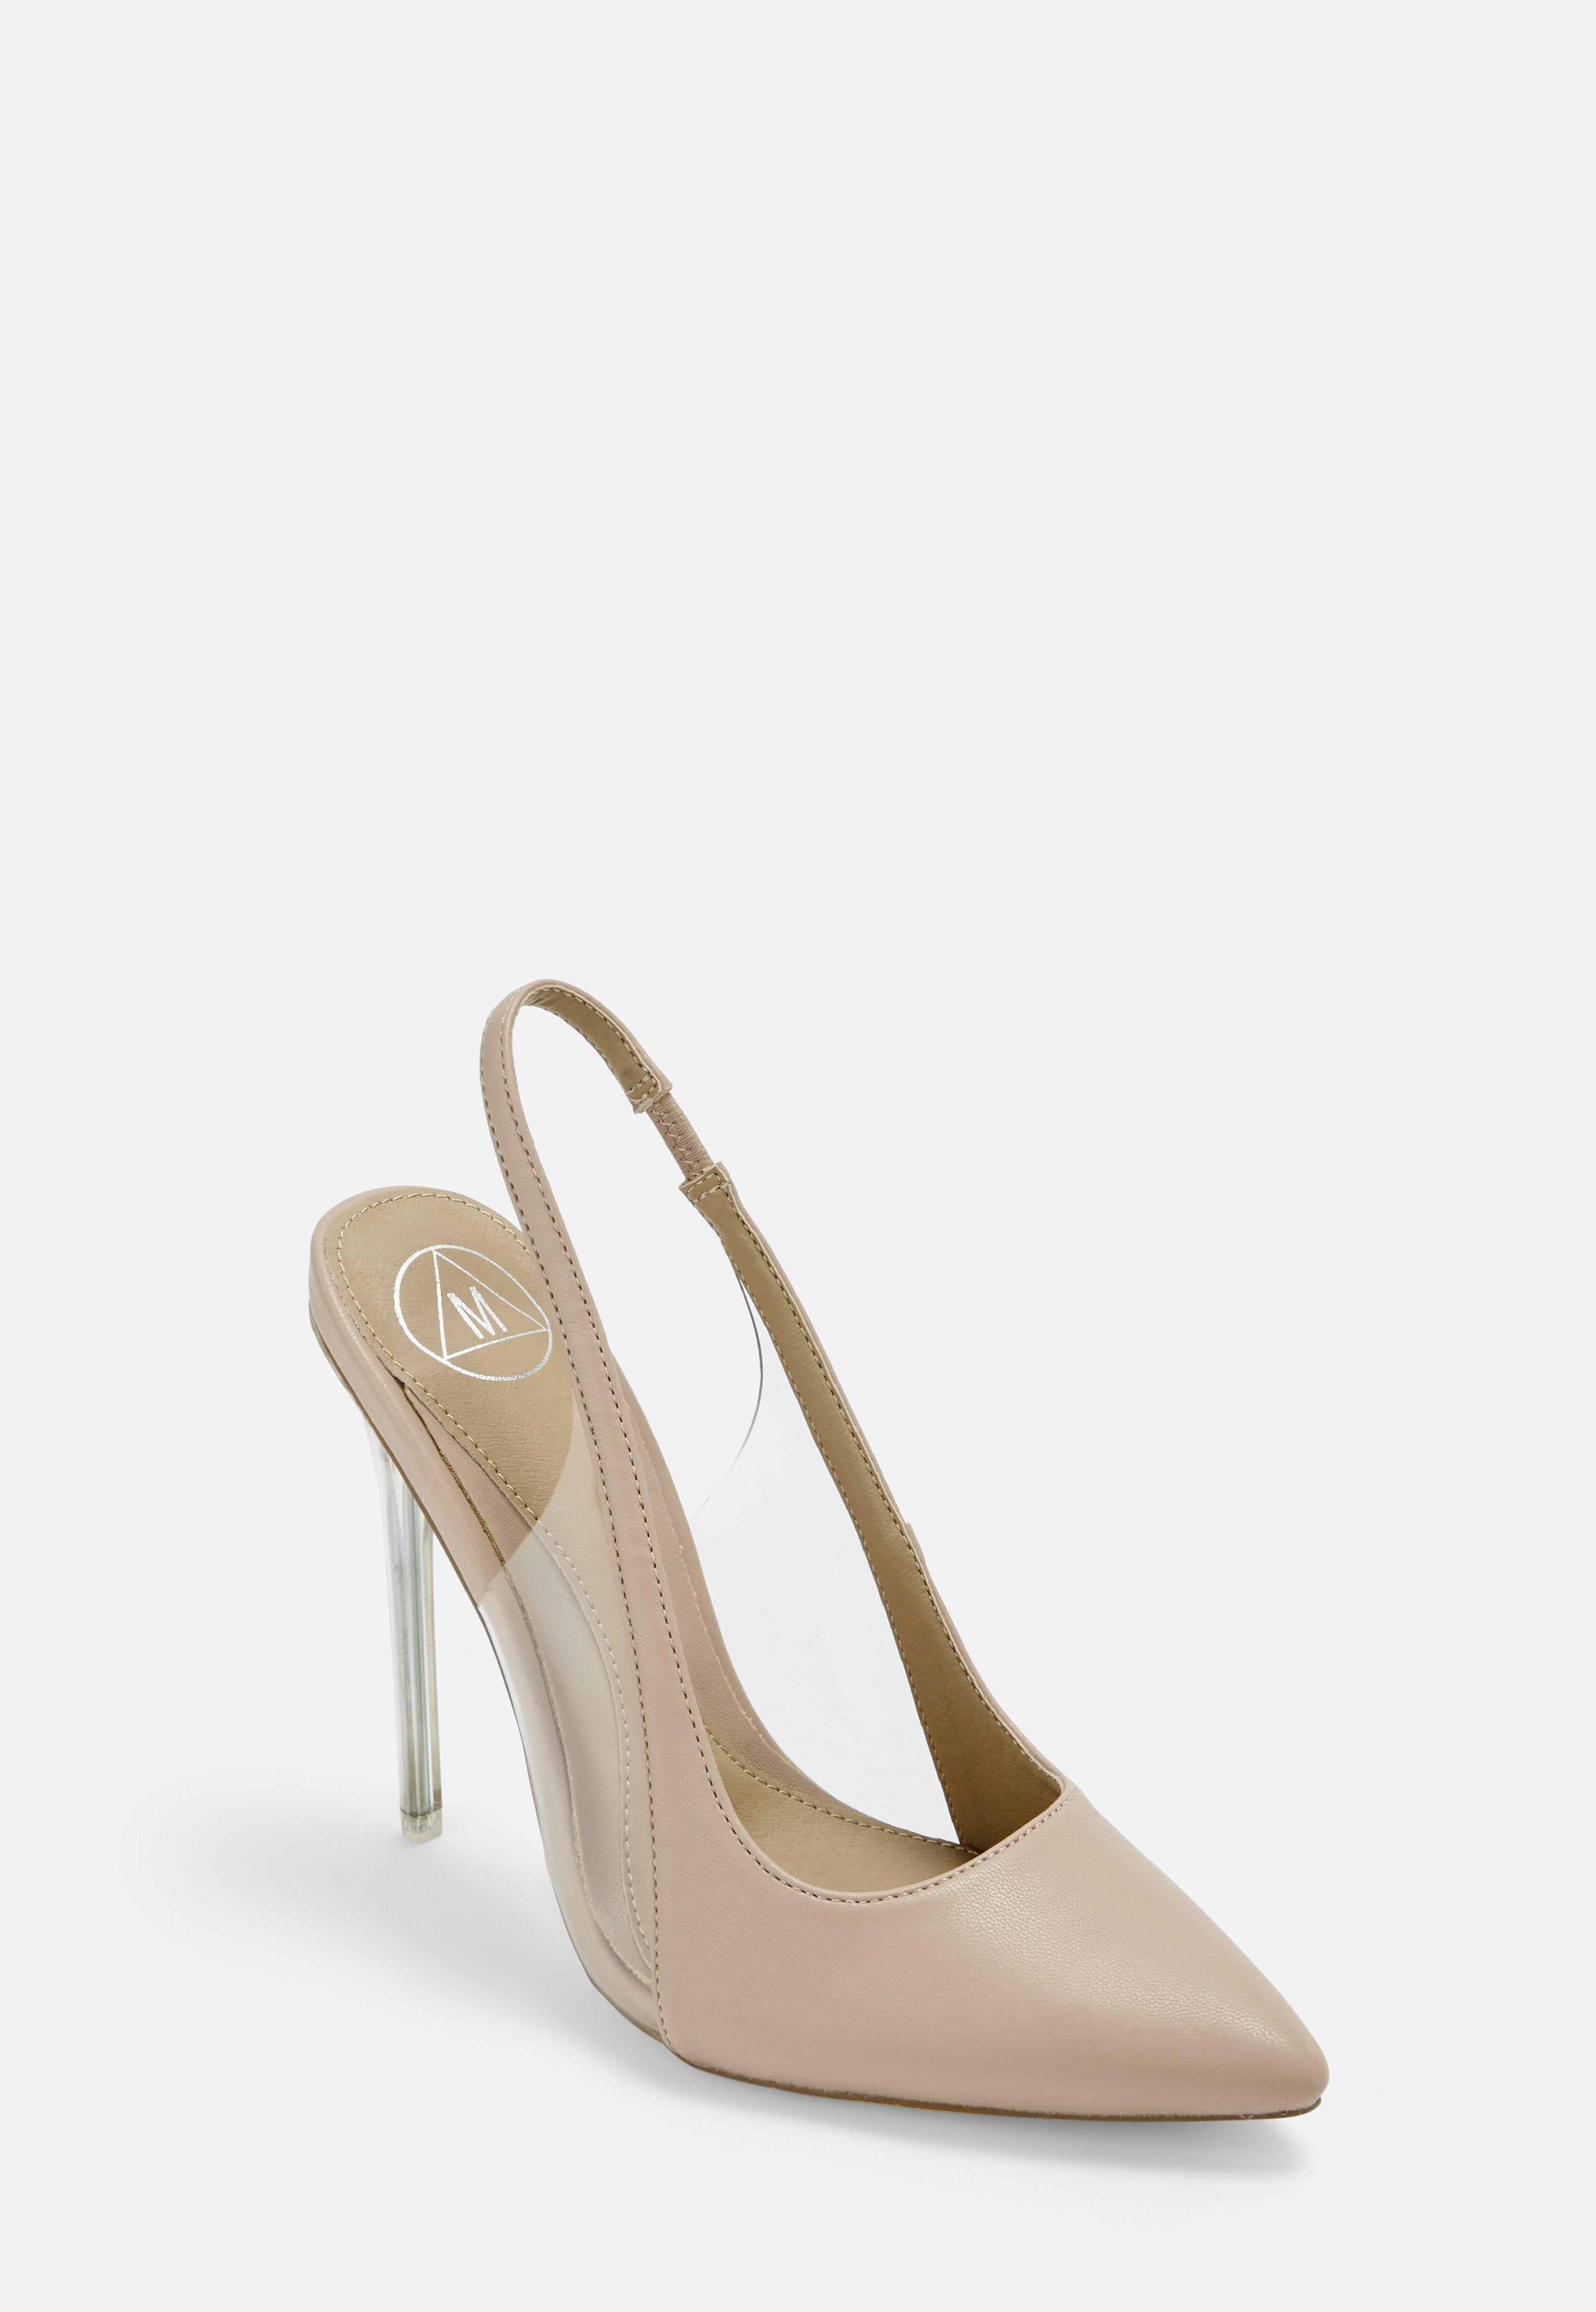 8a3f28403b Heeled Sandals | Strappy & Barely There Heels - Missguided